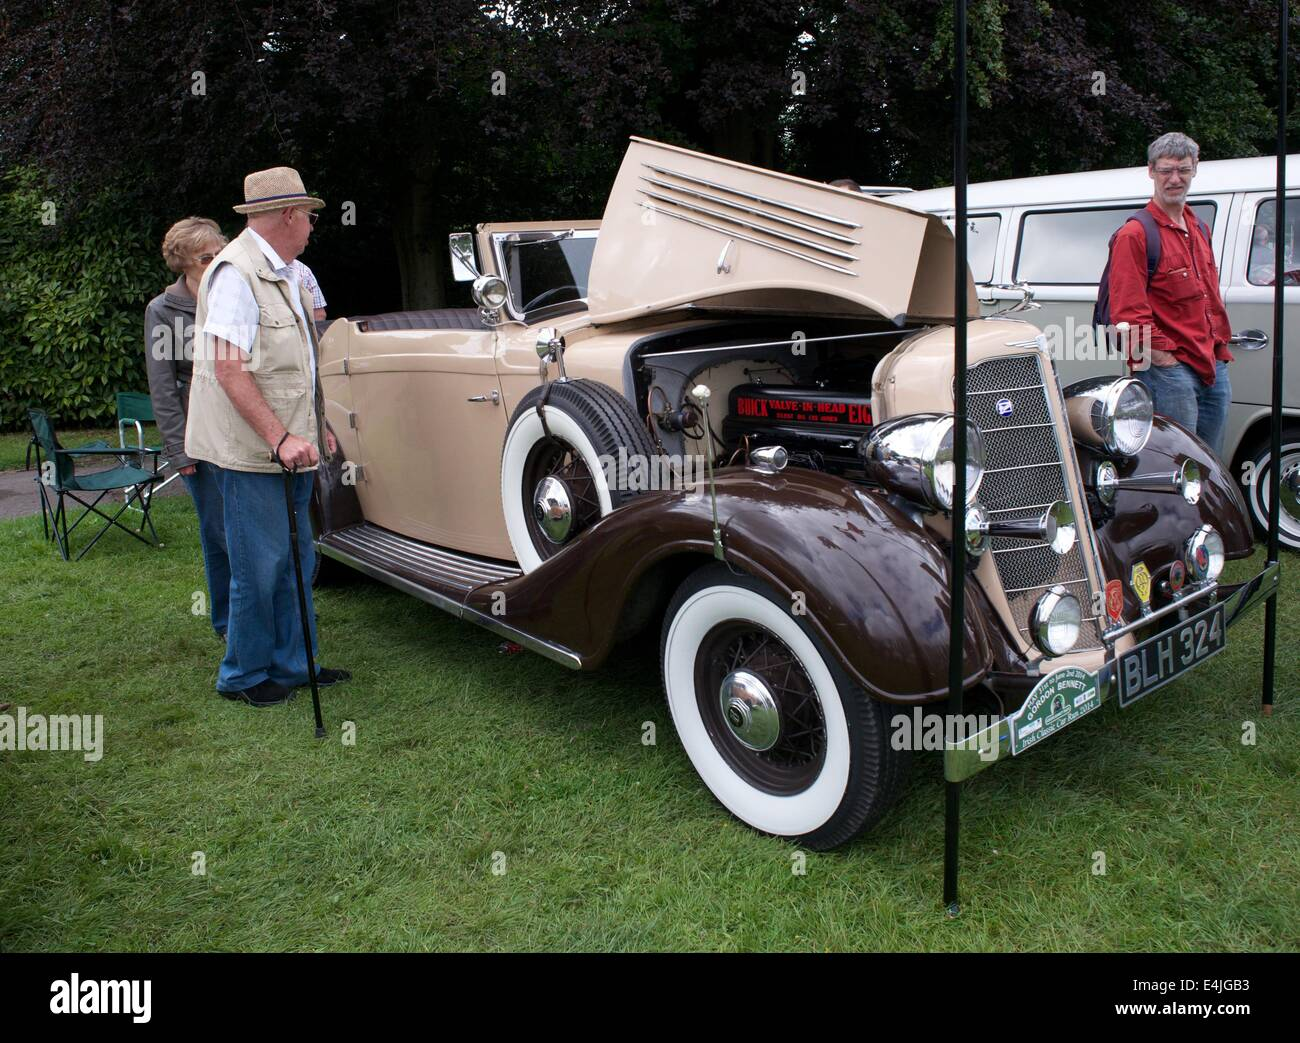 Manchester, UK  13th July 2014 An elderly man looks at a 1934 McLaughlin Buick (Albermarle) Series NA50 Model 58 - Stock Image